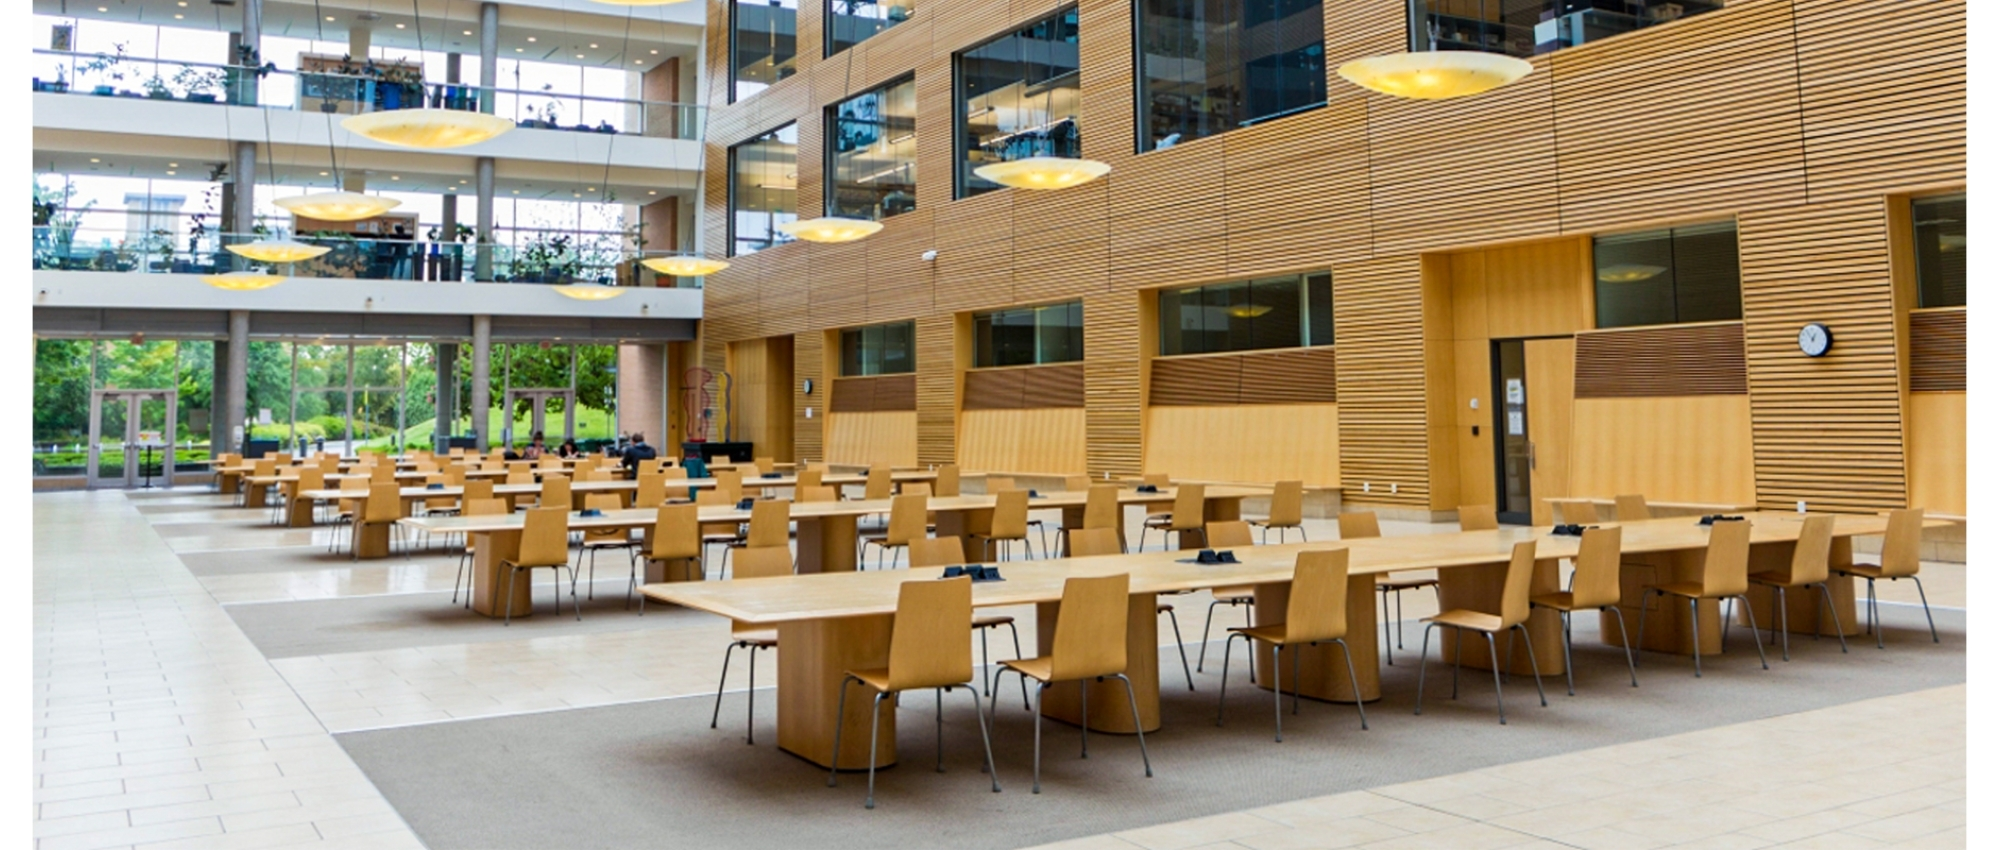 Image of the cafeteria of the Centre for Blood Research buidling